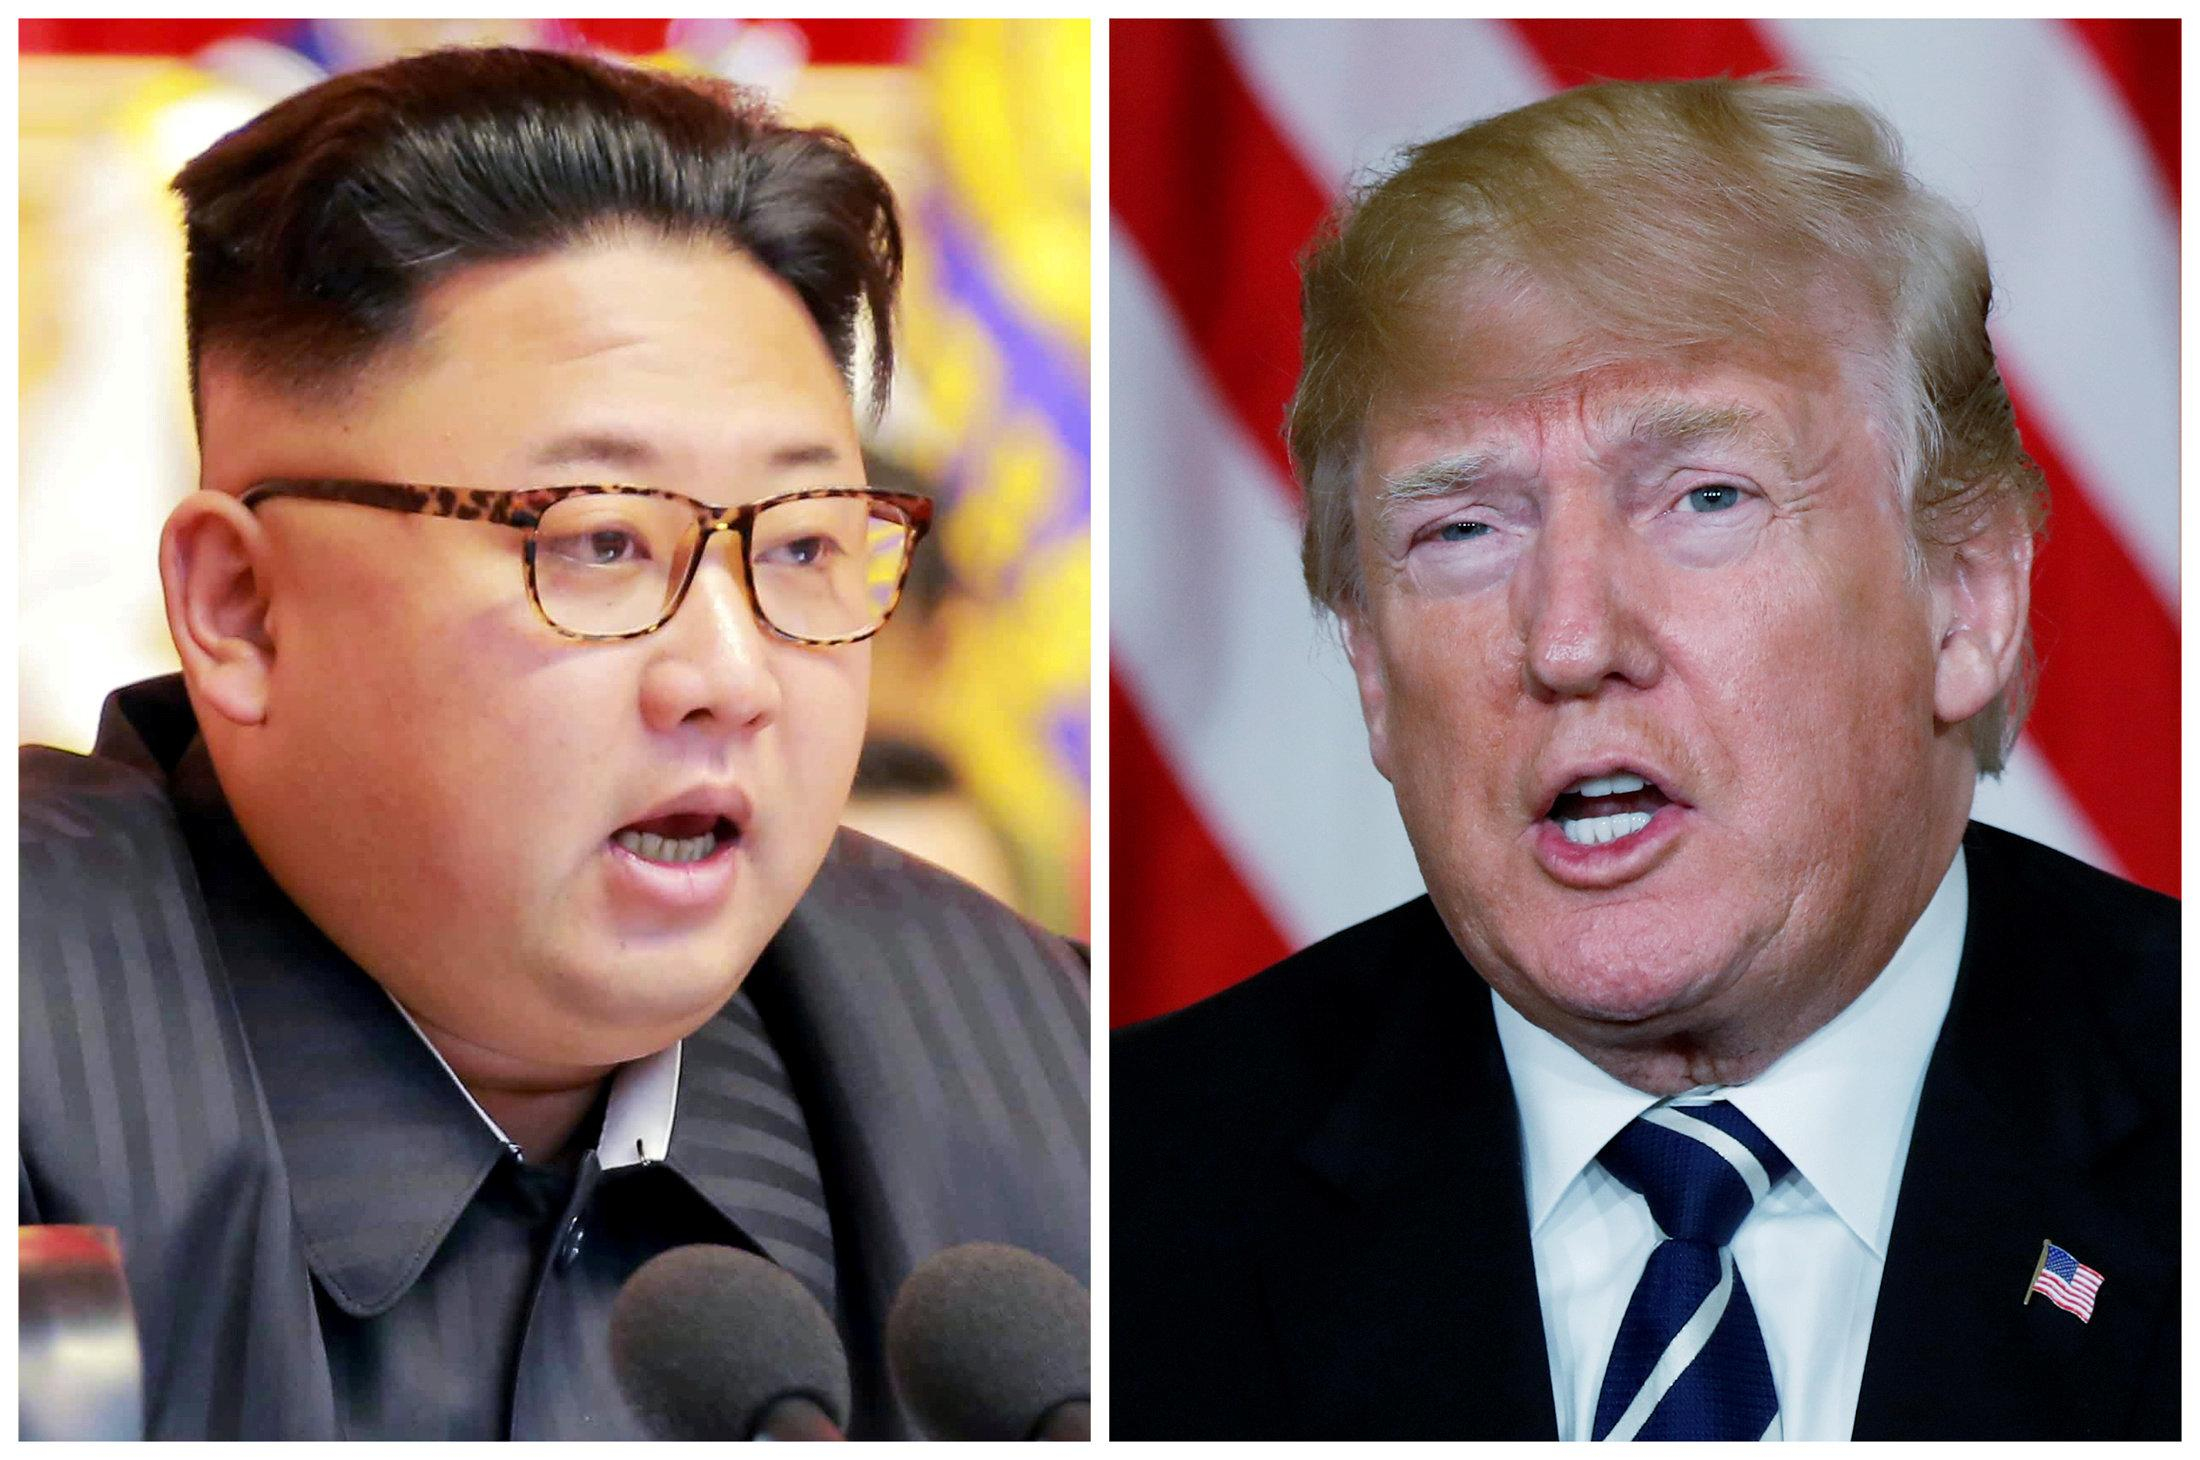 Trump - Two or three sites possible for U.S, North Korea summit